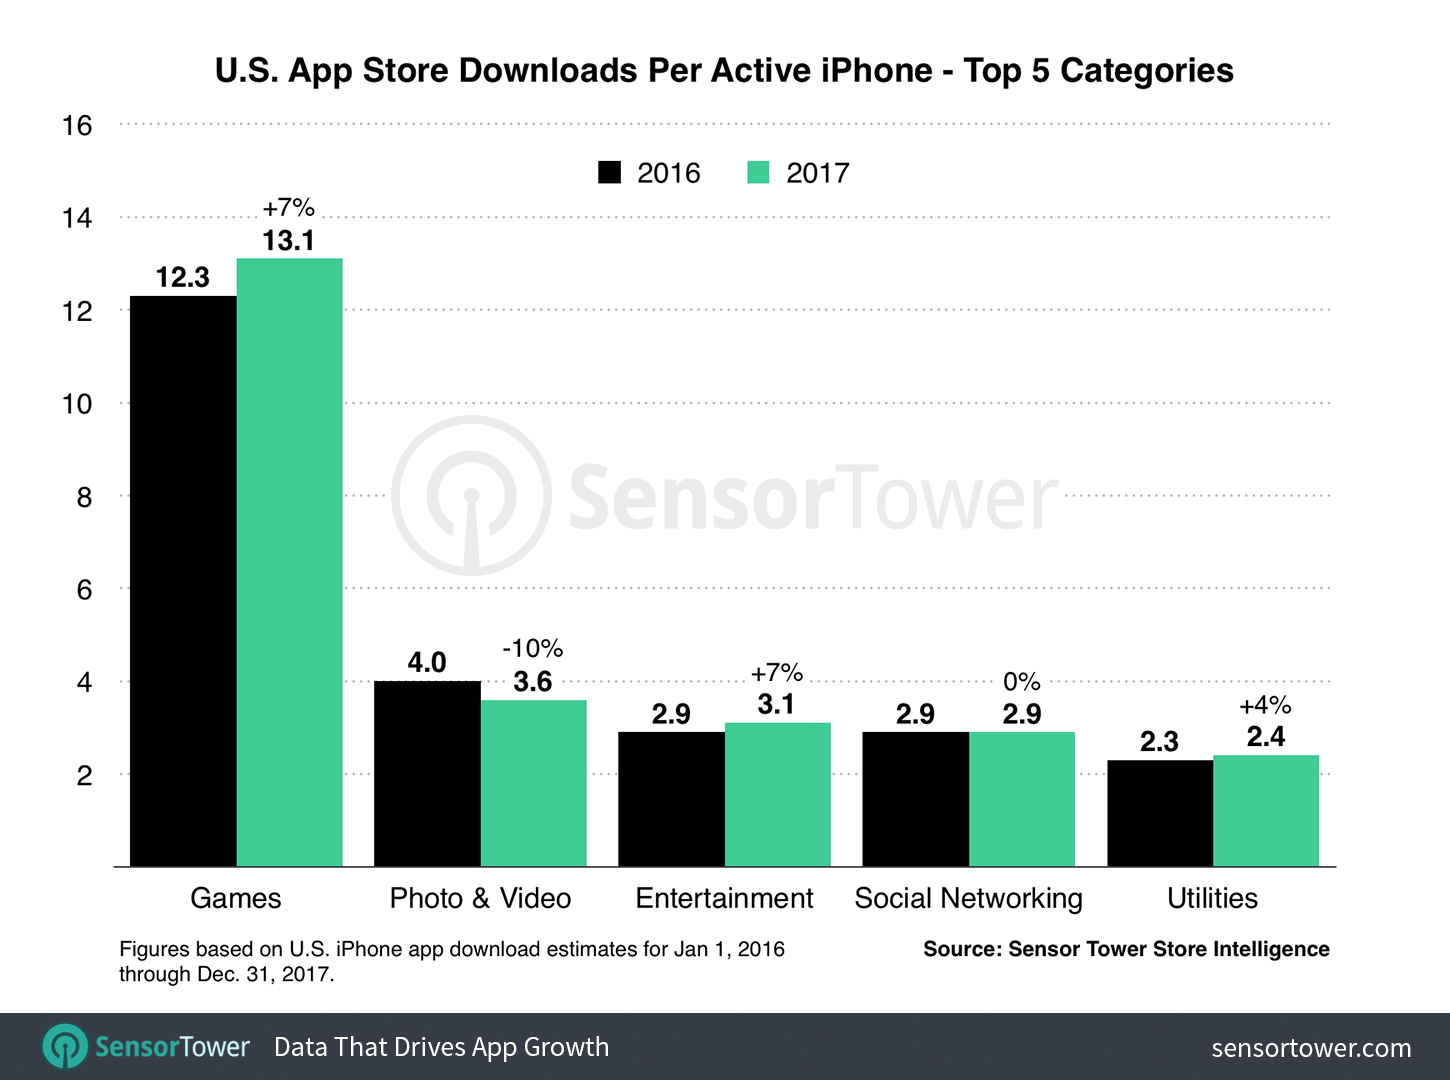 U.S. iPhone Users Spent An Average of $58 on Apps in 2017